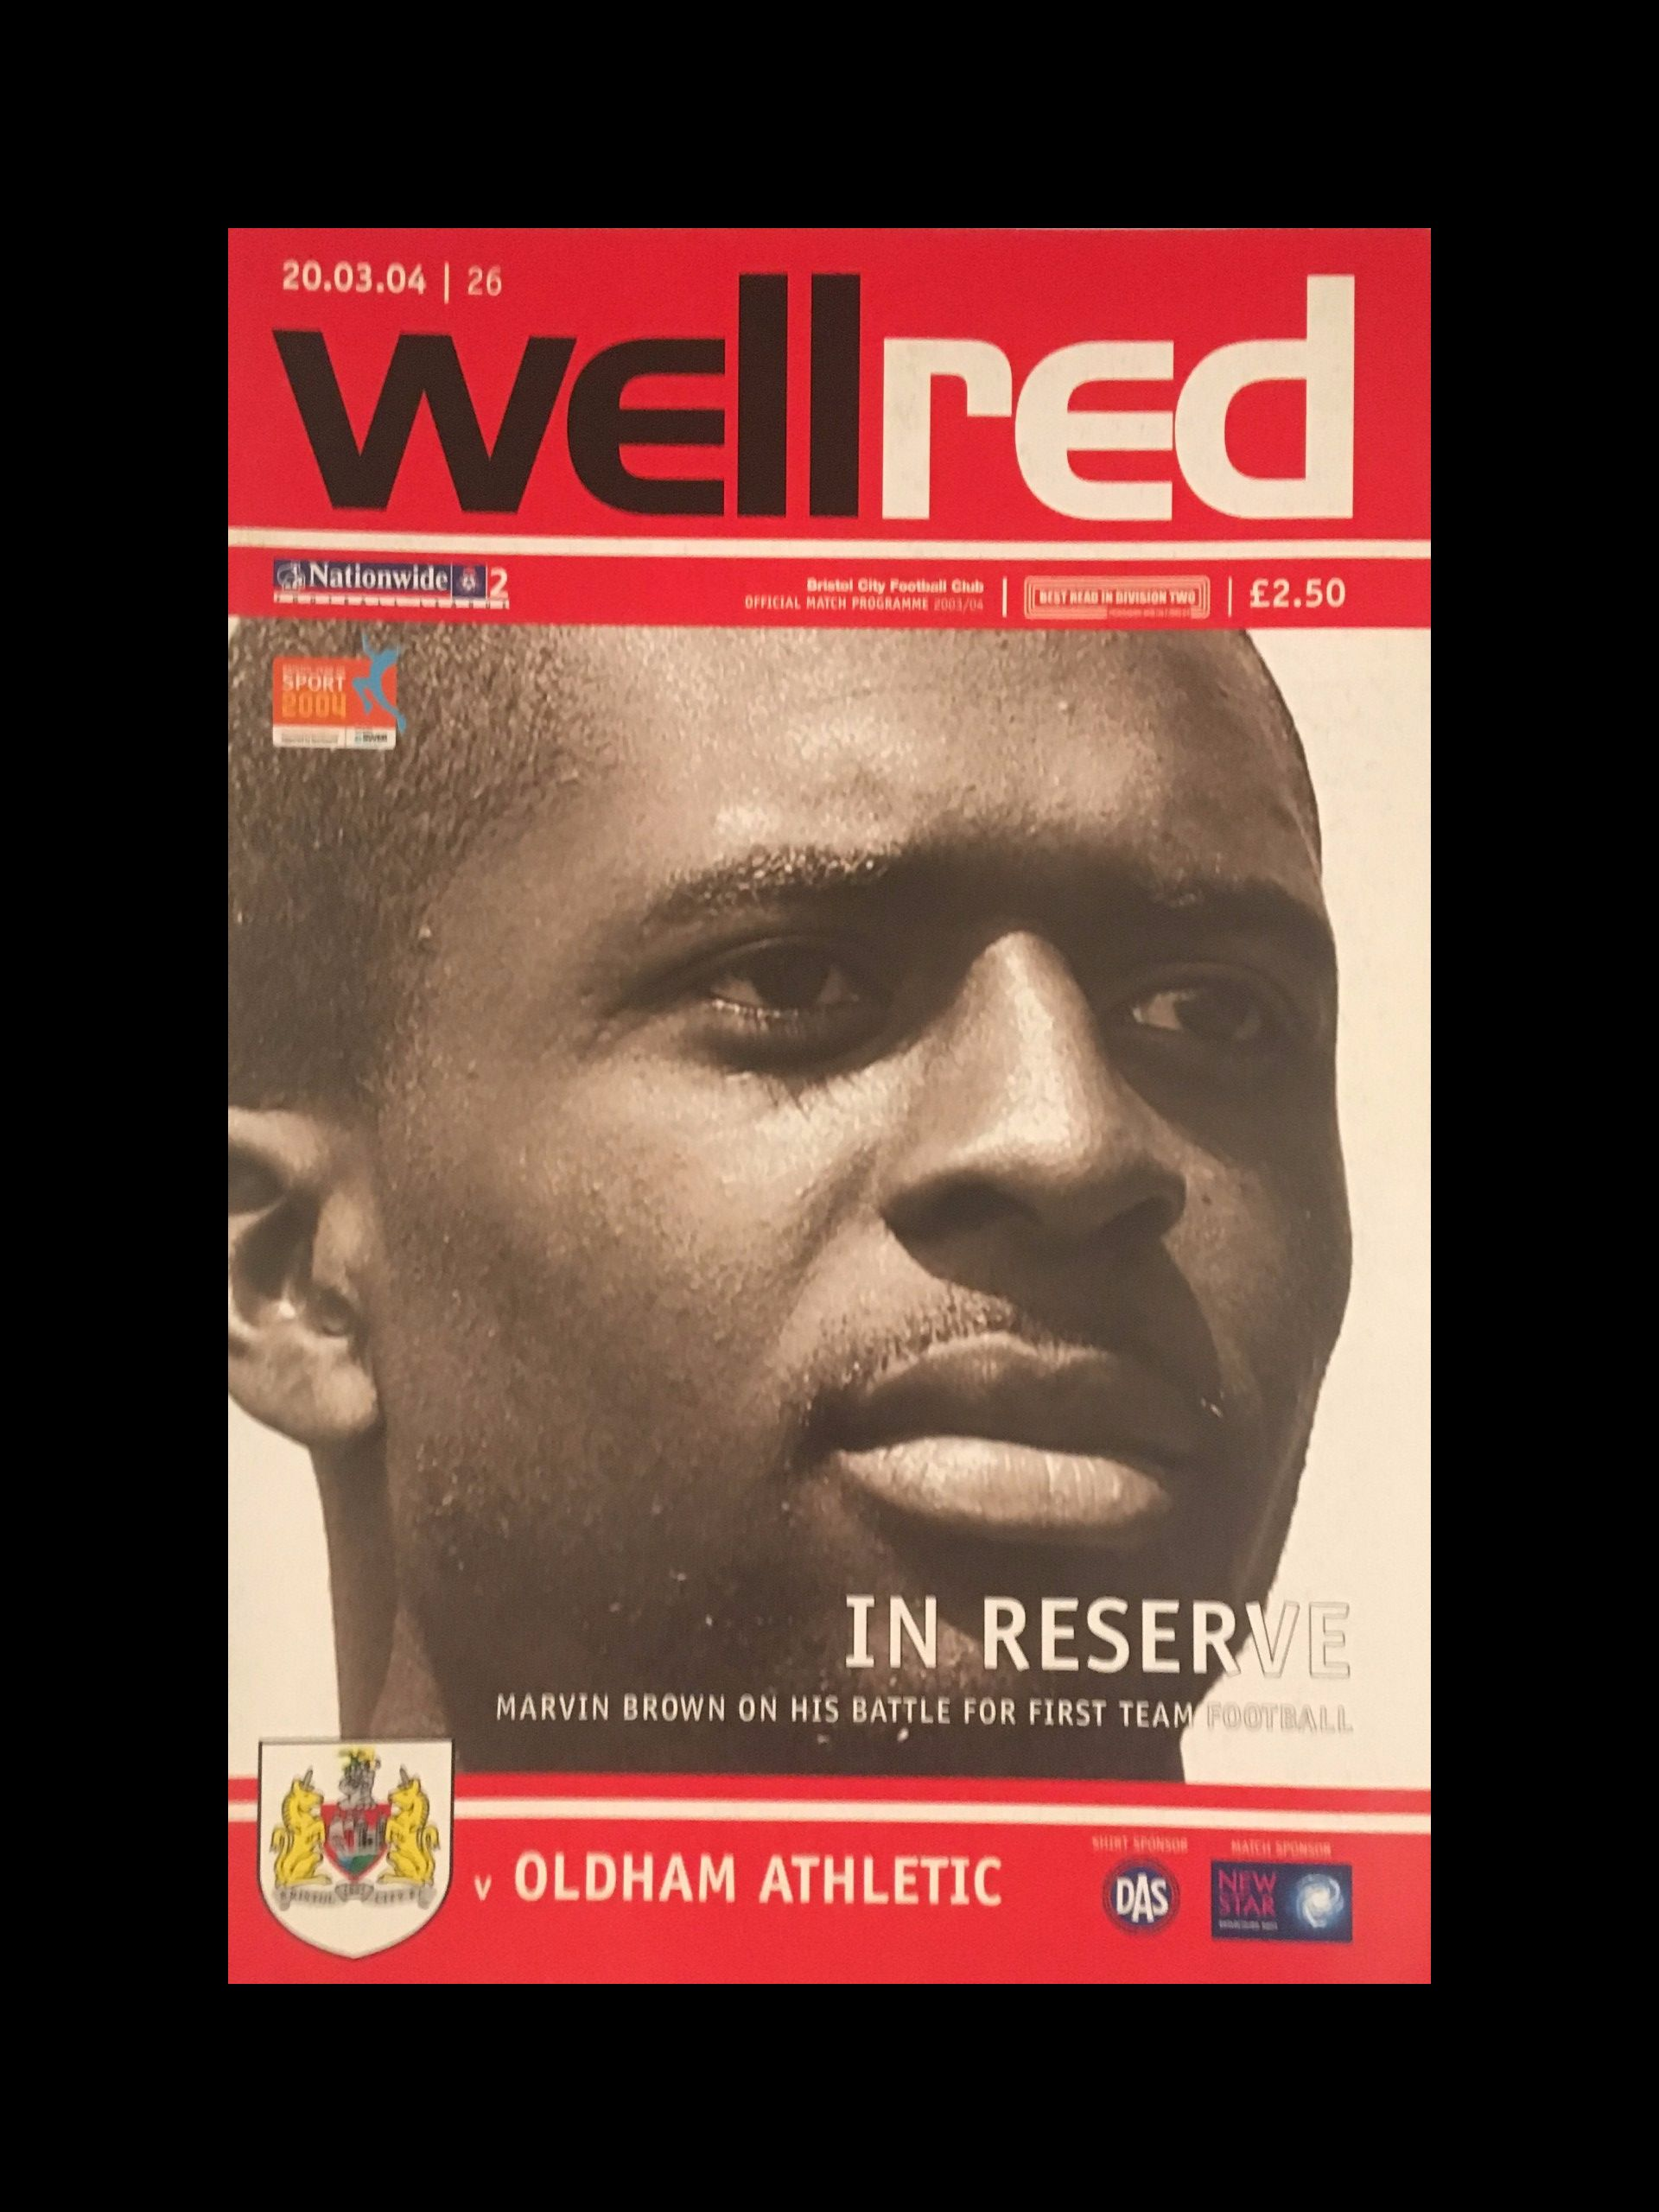 Bristol City v Oldham Athletic 20-03-2004 Programme